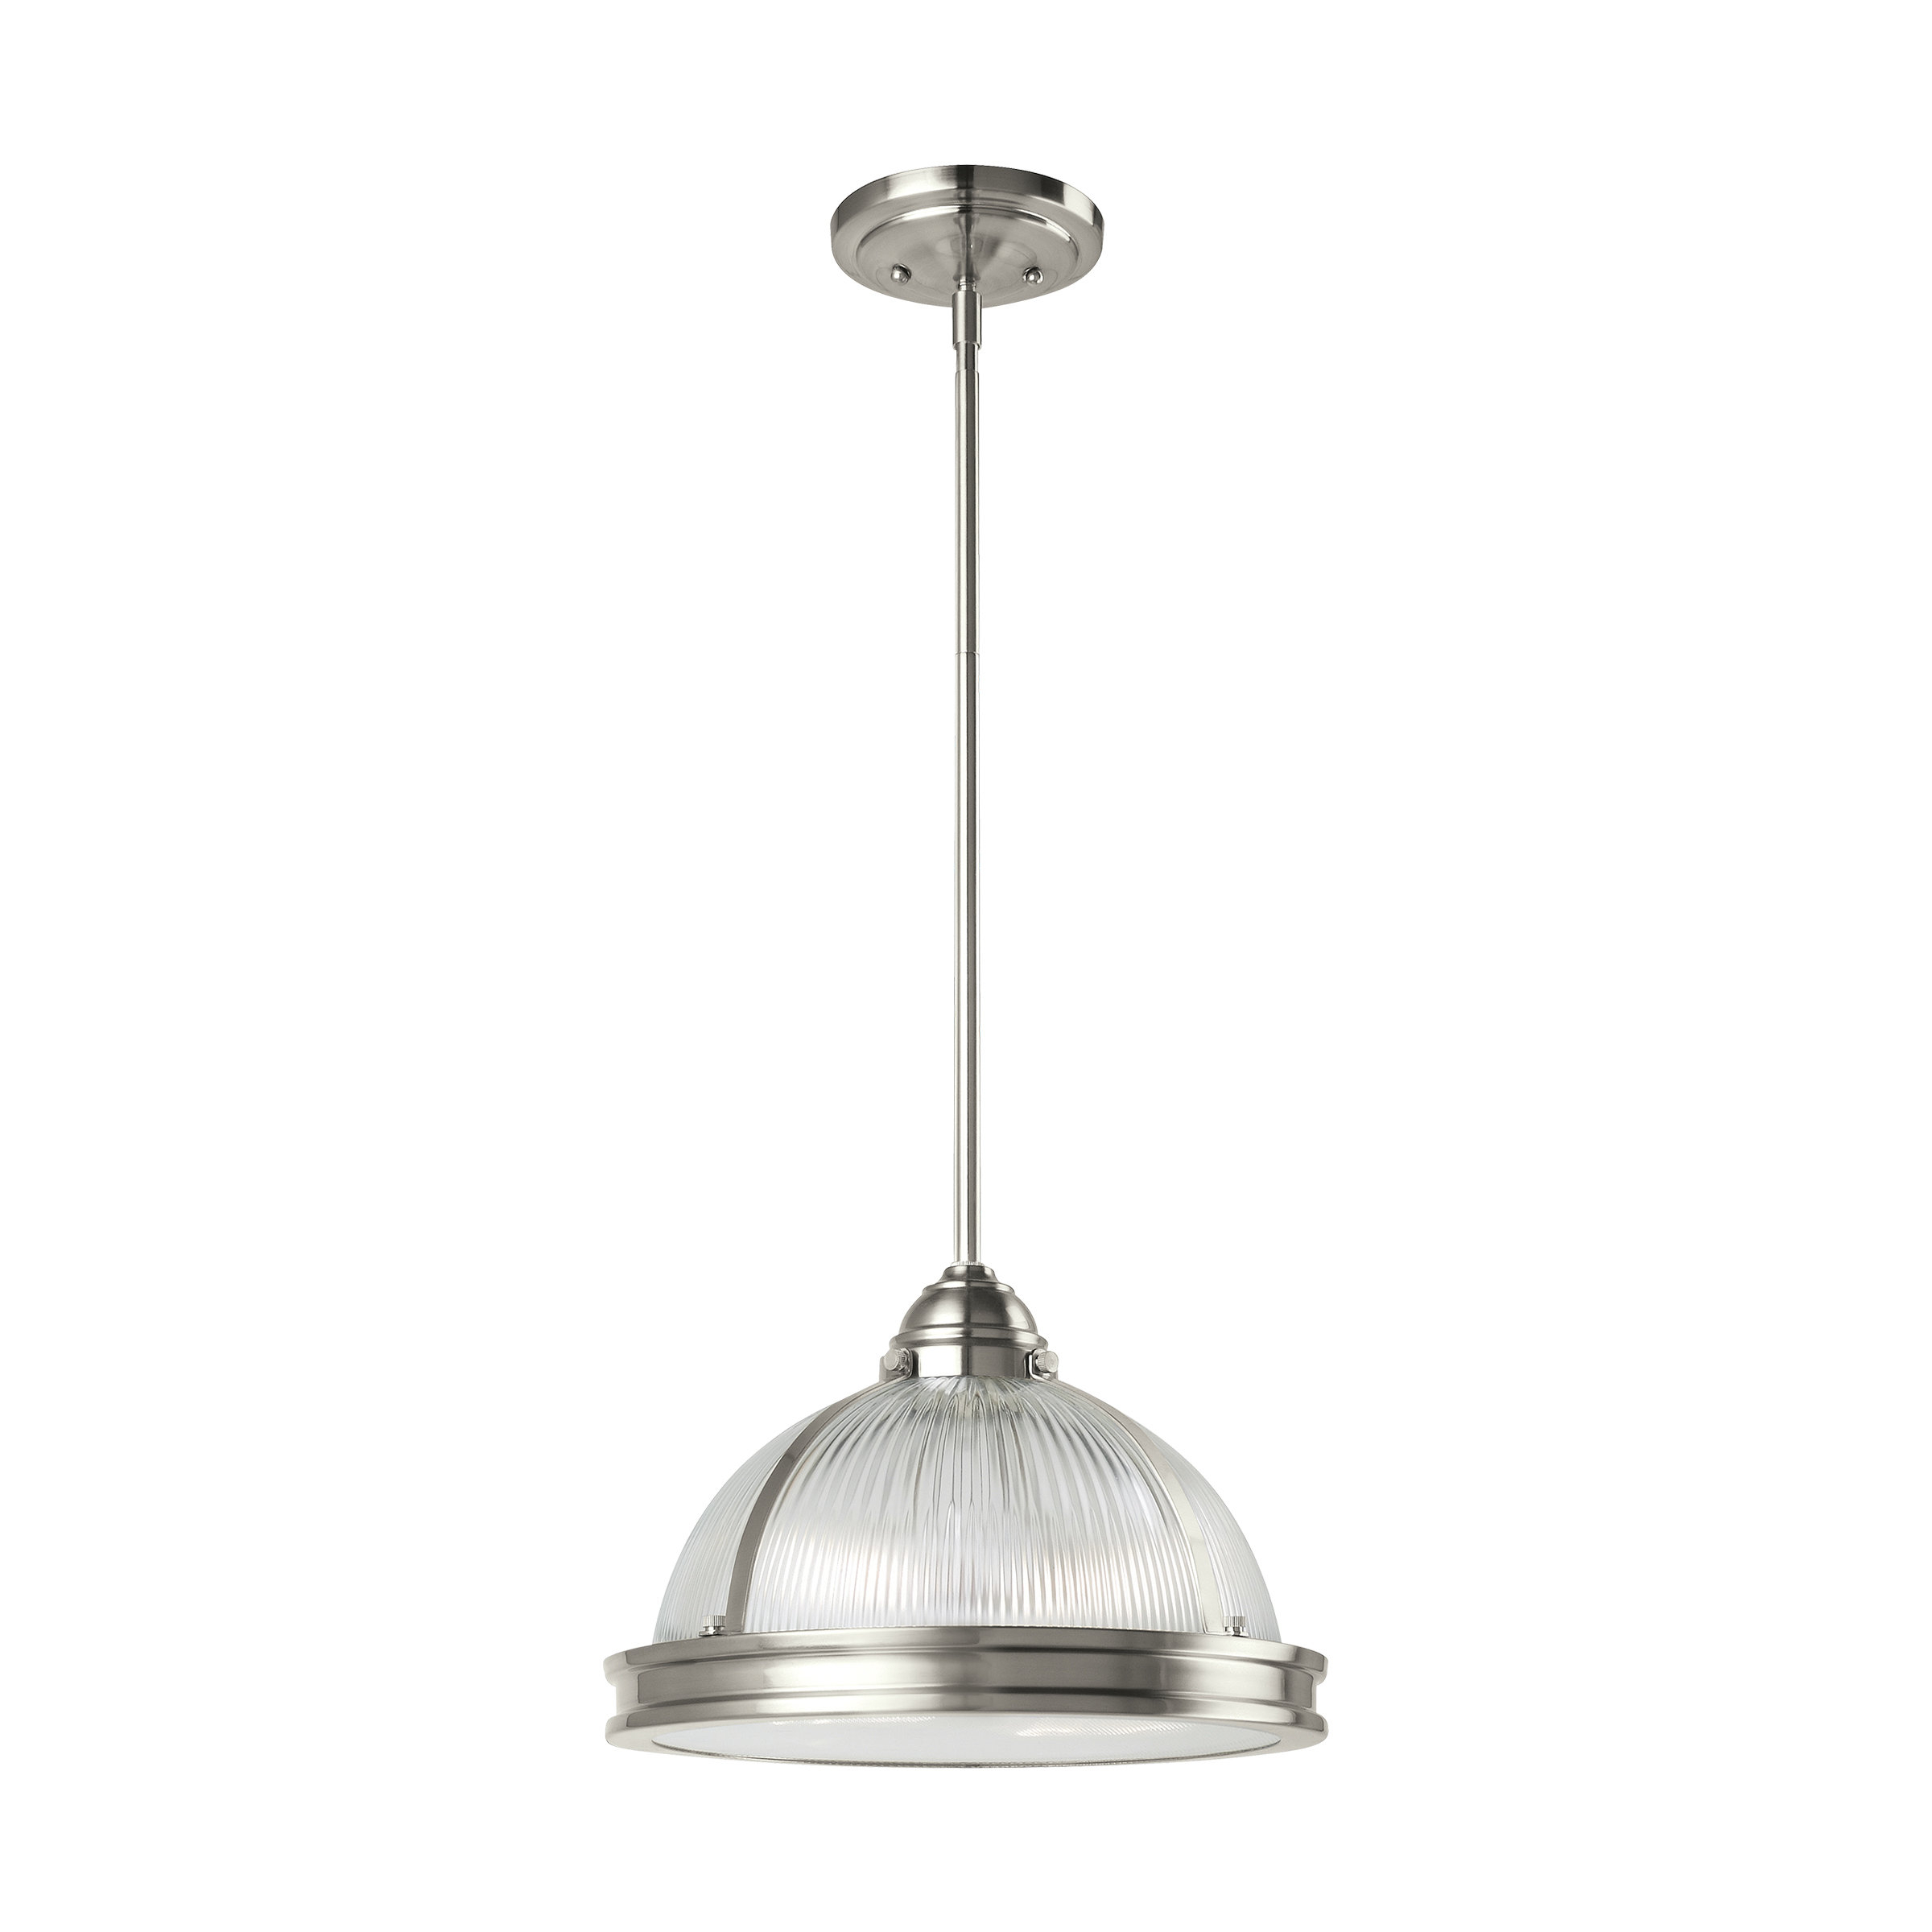 Most Popular Granville 2 Light Single Dome Pendant Throughout Granville 3 Light Single Dome Pendants (View 17 of 25)